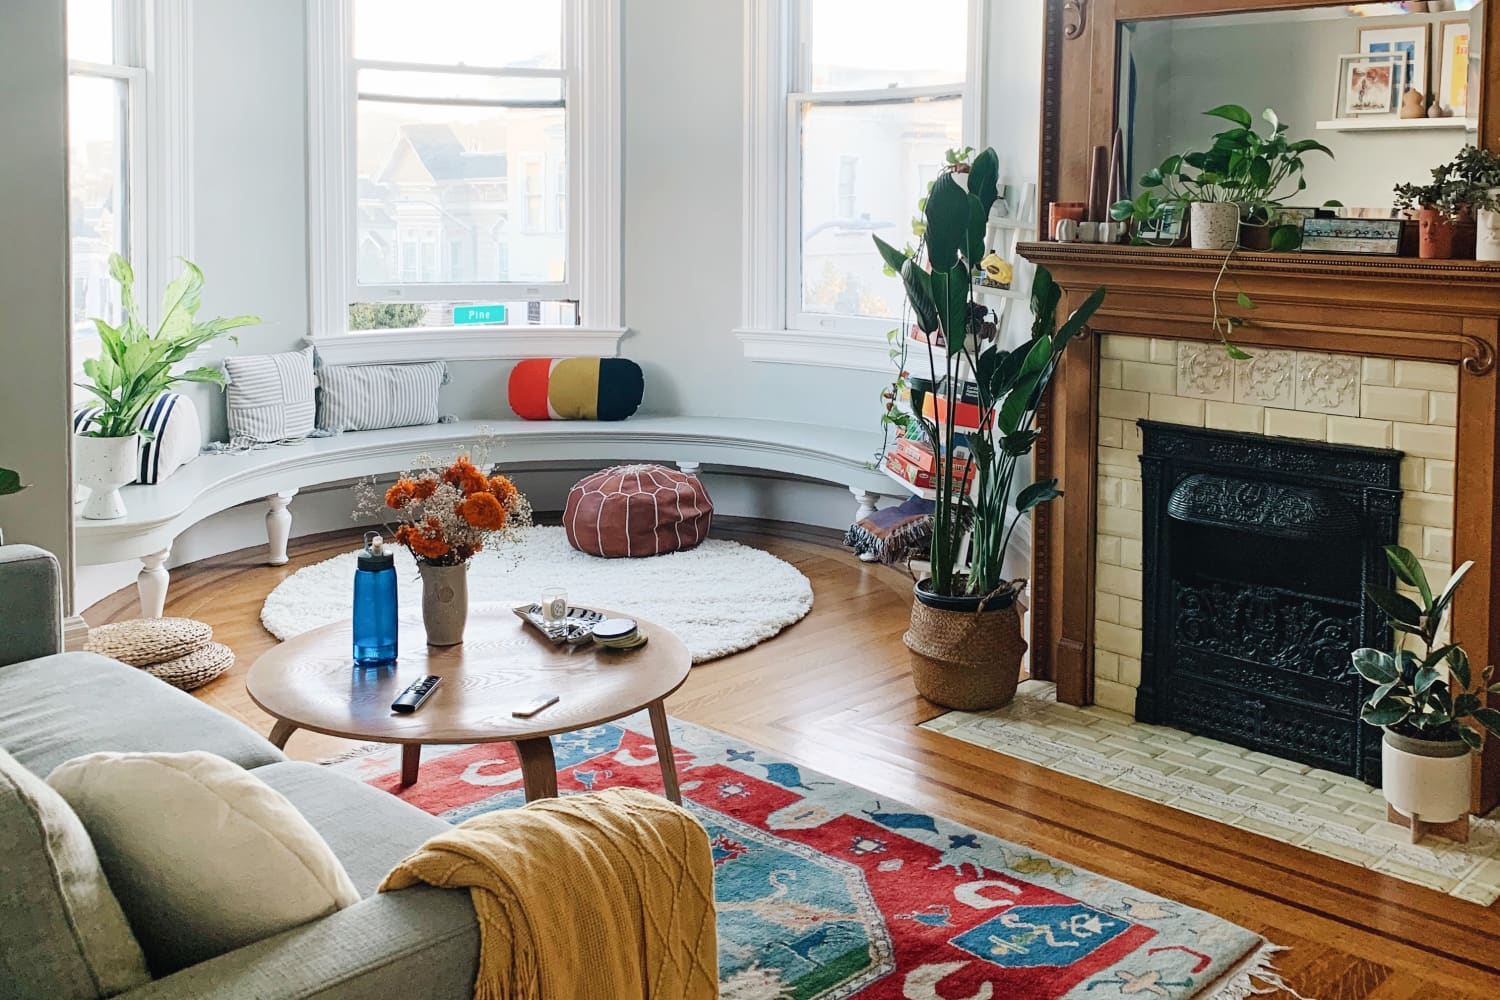 A Shared San Francisco Apartment Has the Dreamiest Curved Window Seat